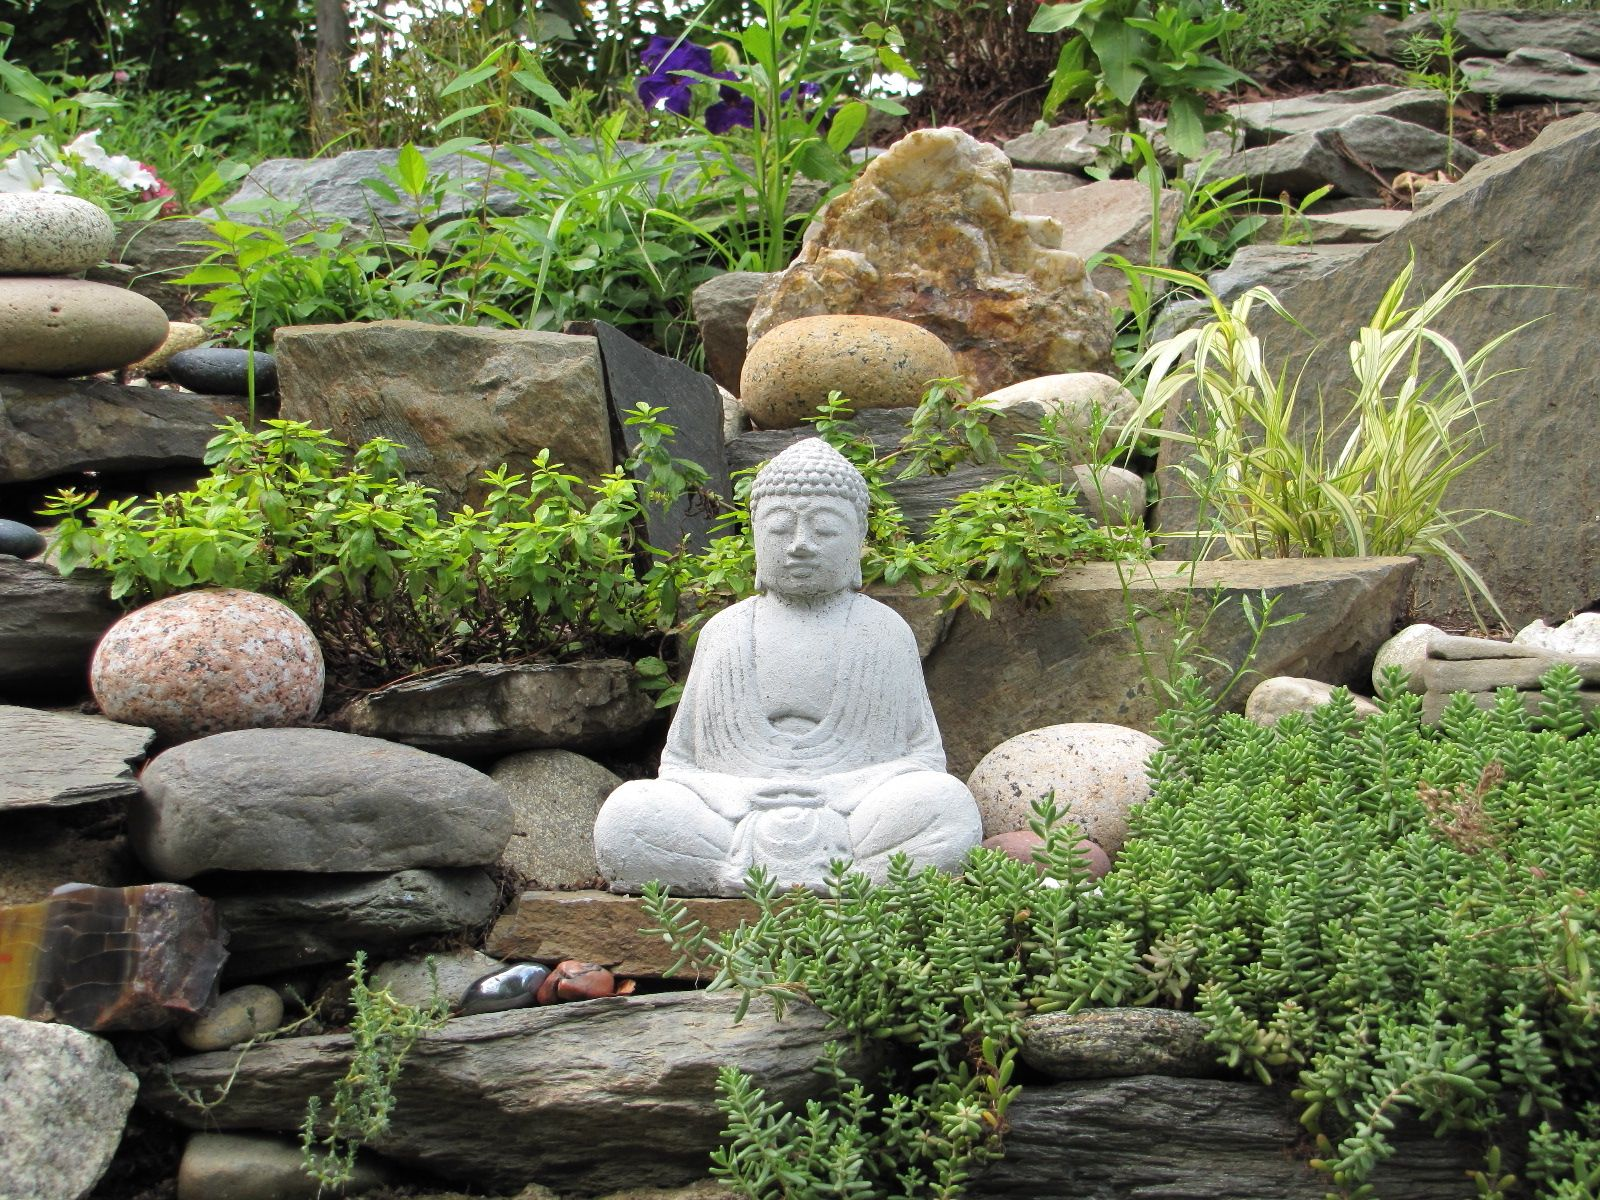 Feng Shui Garden Design Ideas And Tips With Images By Founterior